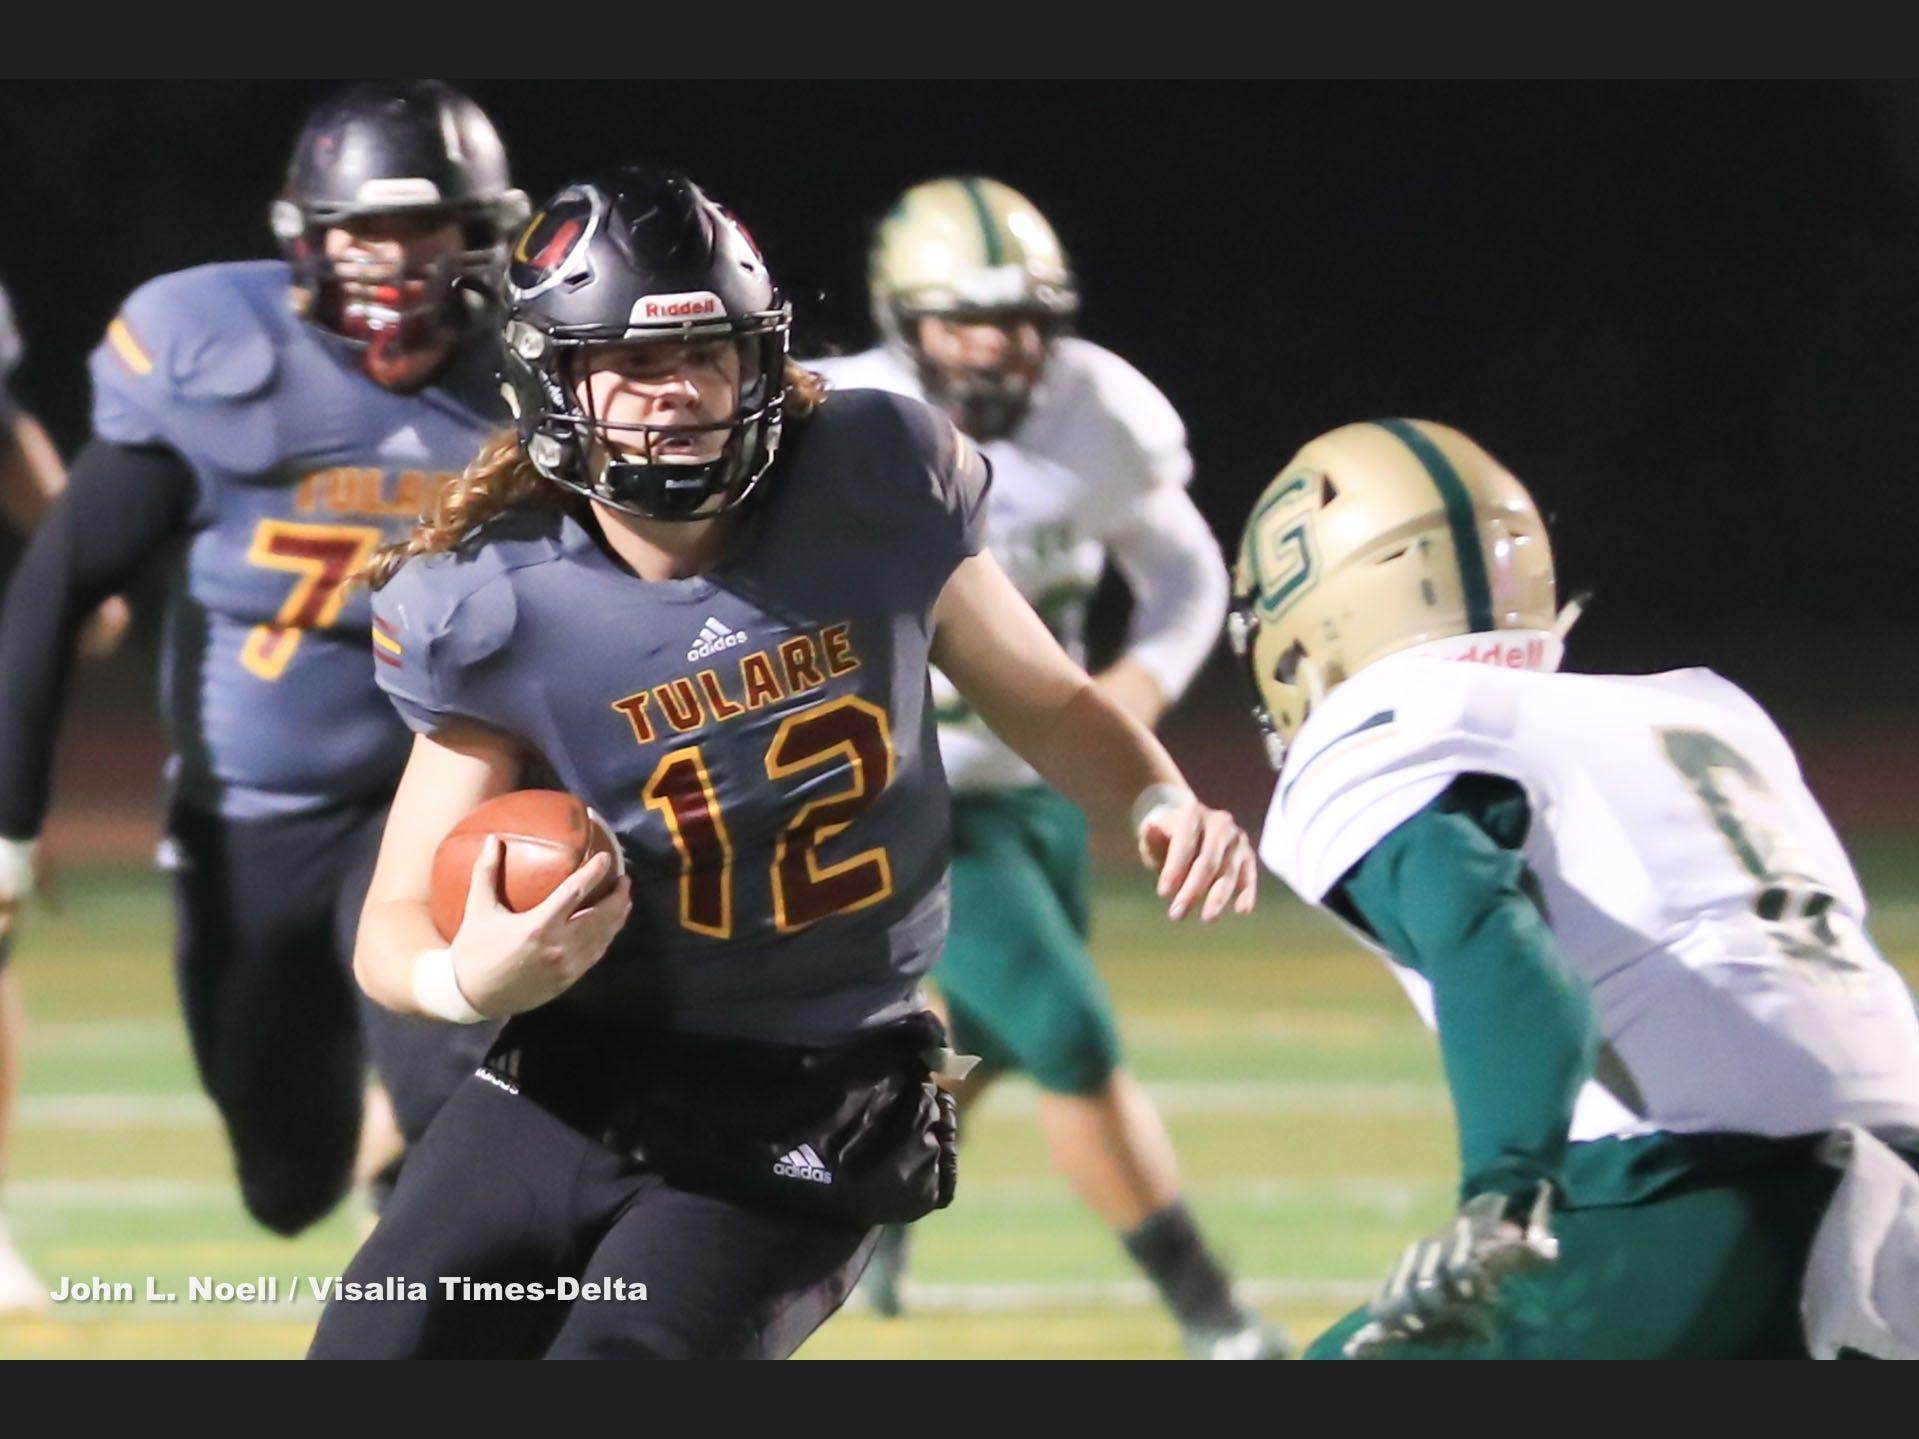 Tulare Union's Nathan Lamb (12) rushes in open field against Garces Memorial in a Central Section Division II quarterfinal high school football game at Bob Mathias Stadium on Nov. 9, 2018.